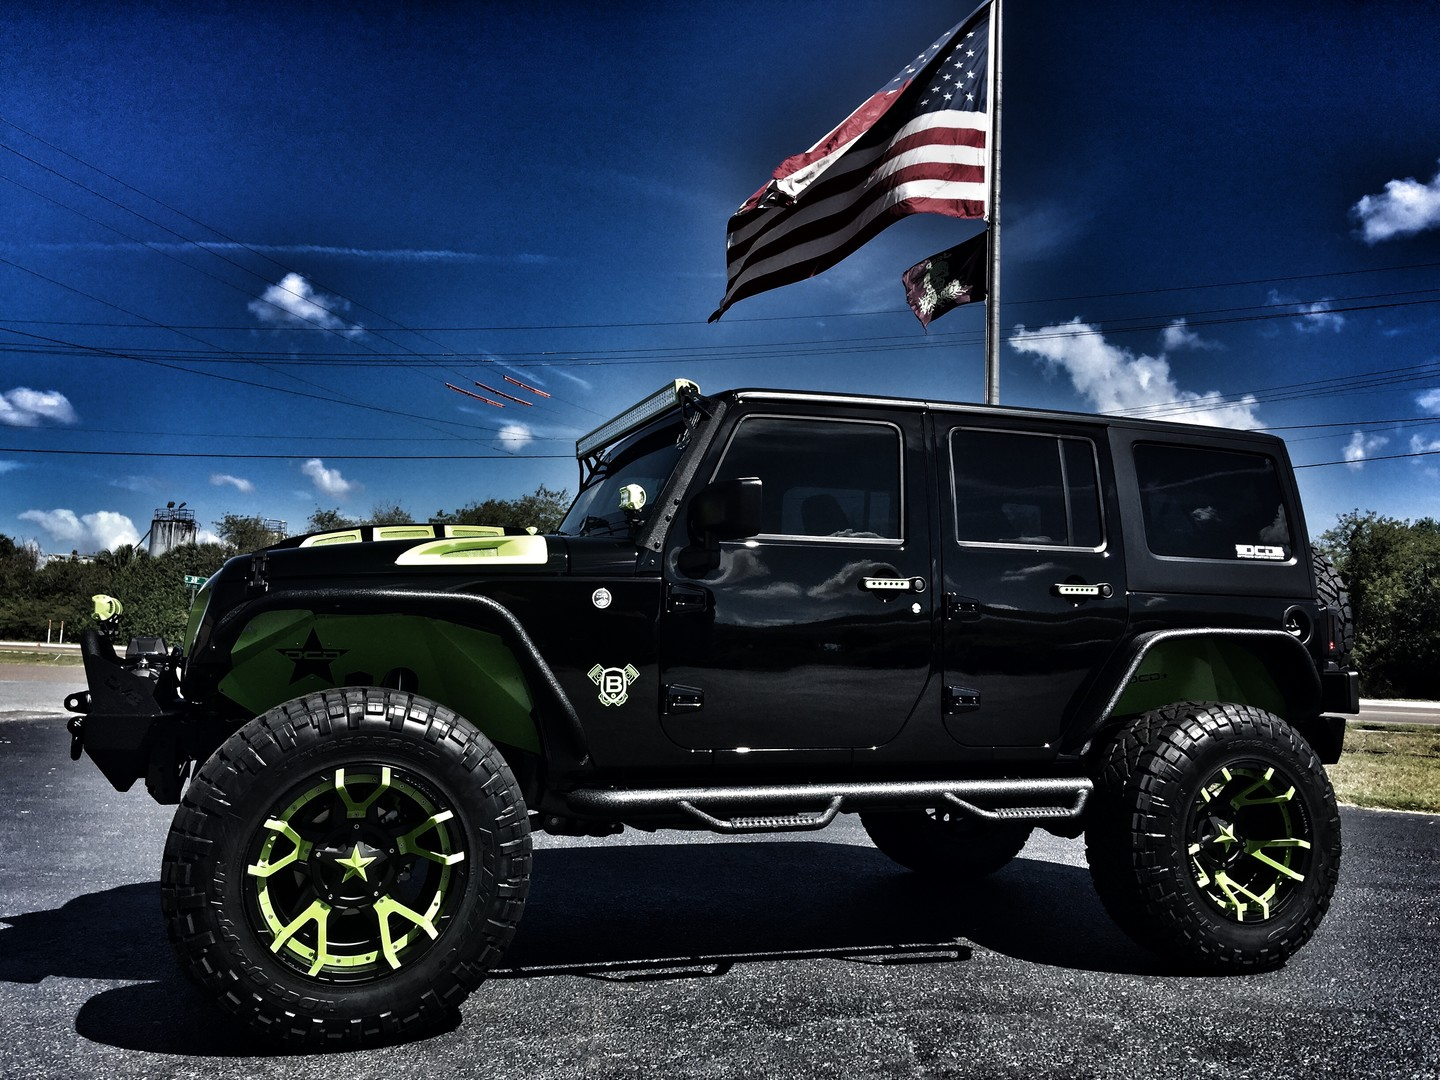 Jeep Wrangler Unlimited Lifted 2017 Jeep Wrangler Unl...